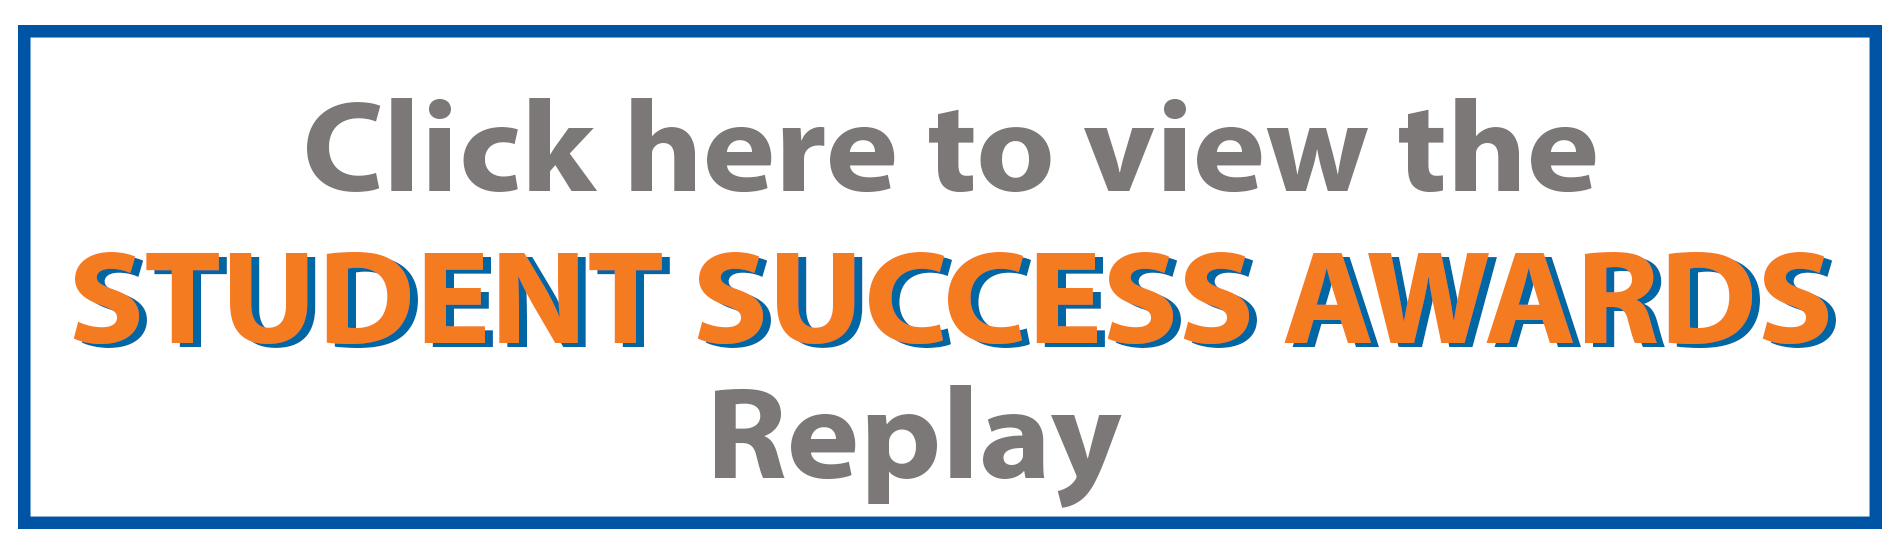 Student Success Replay